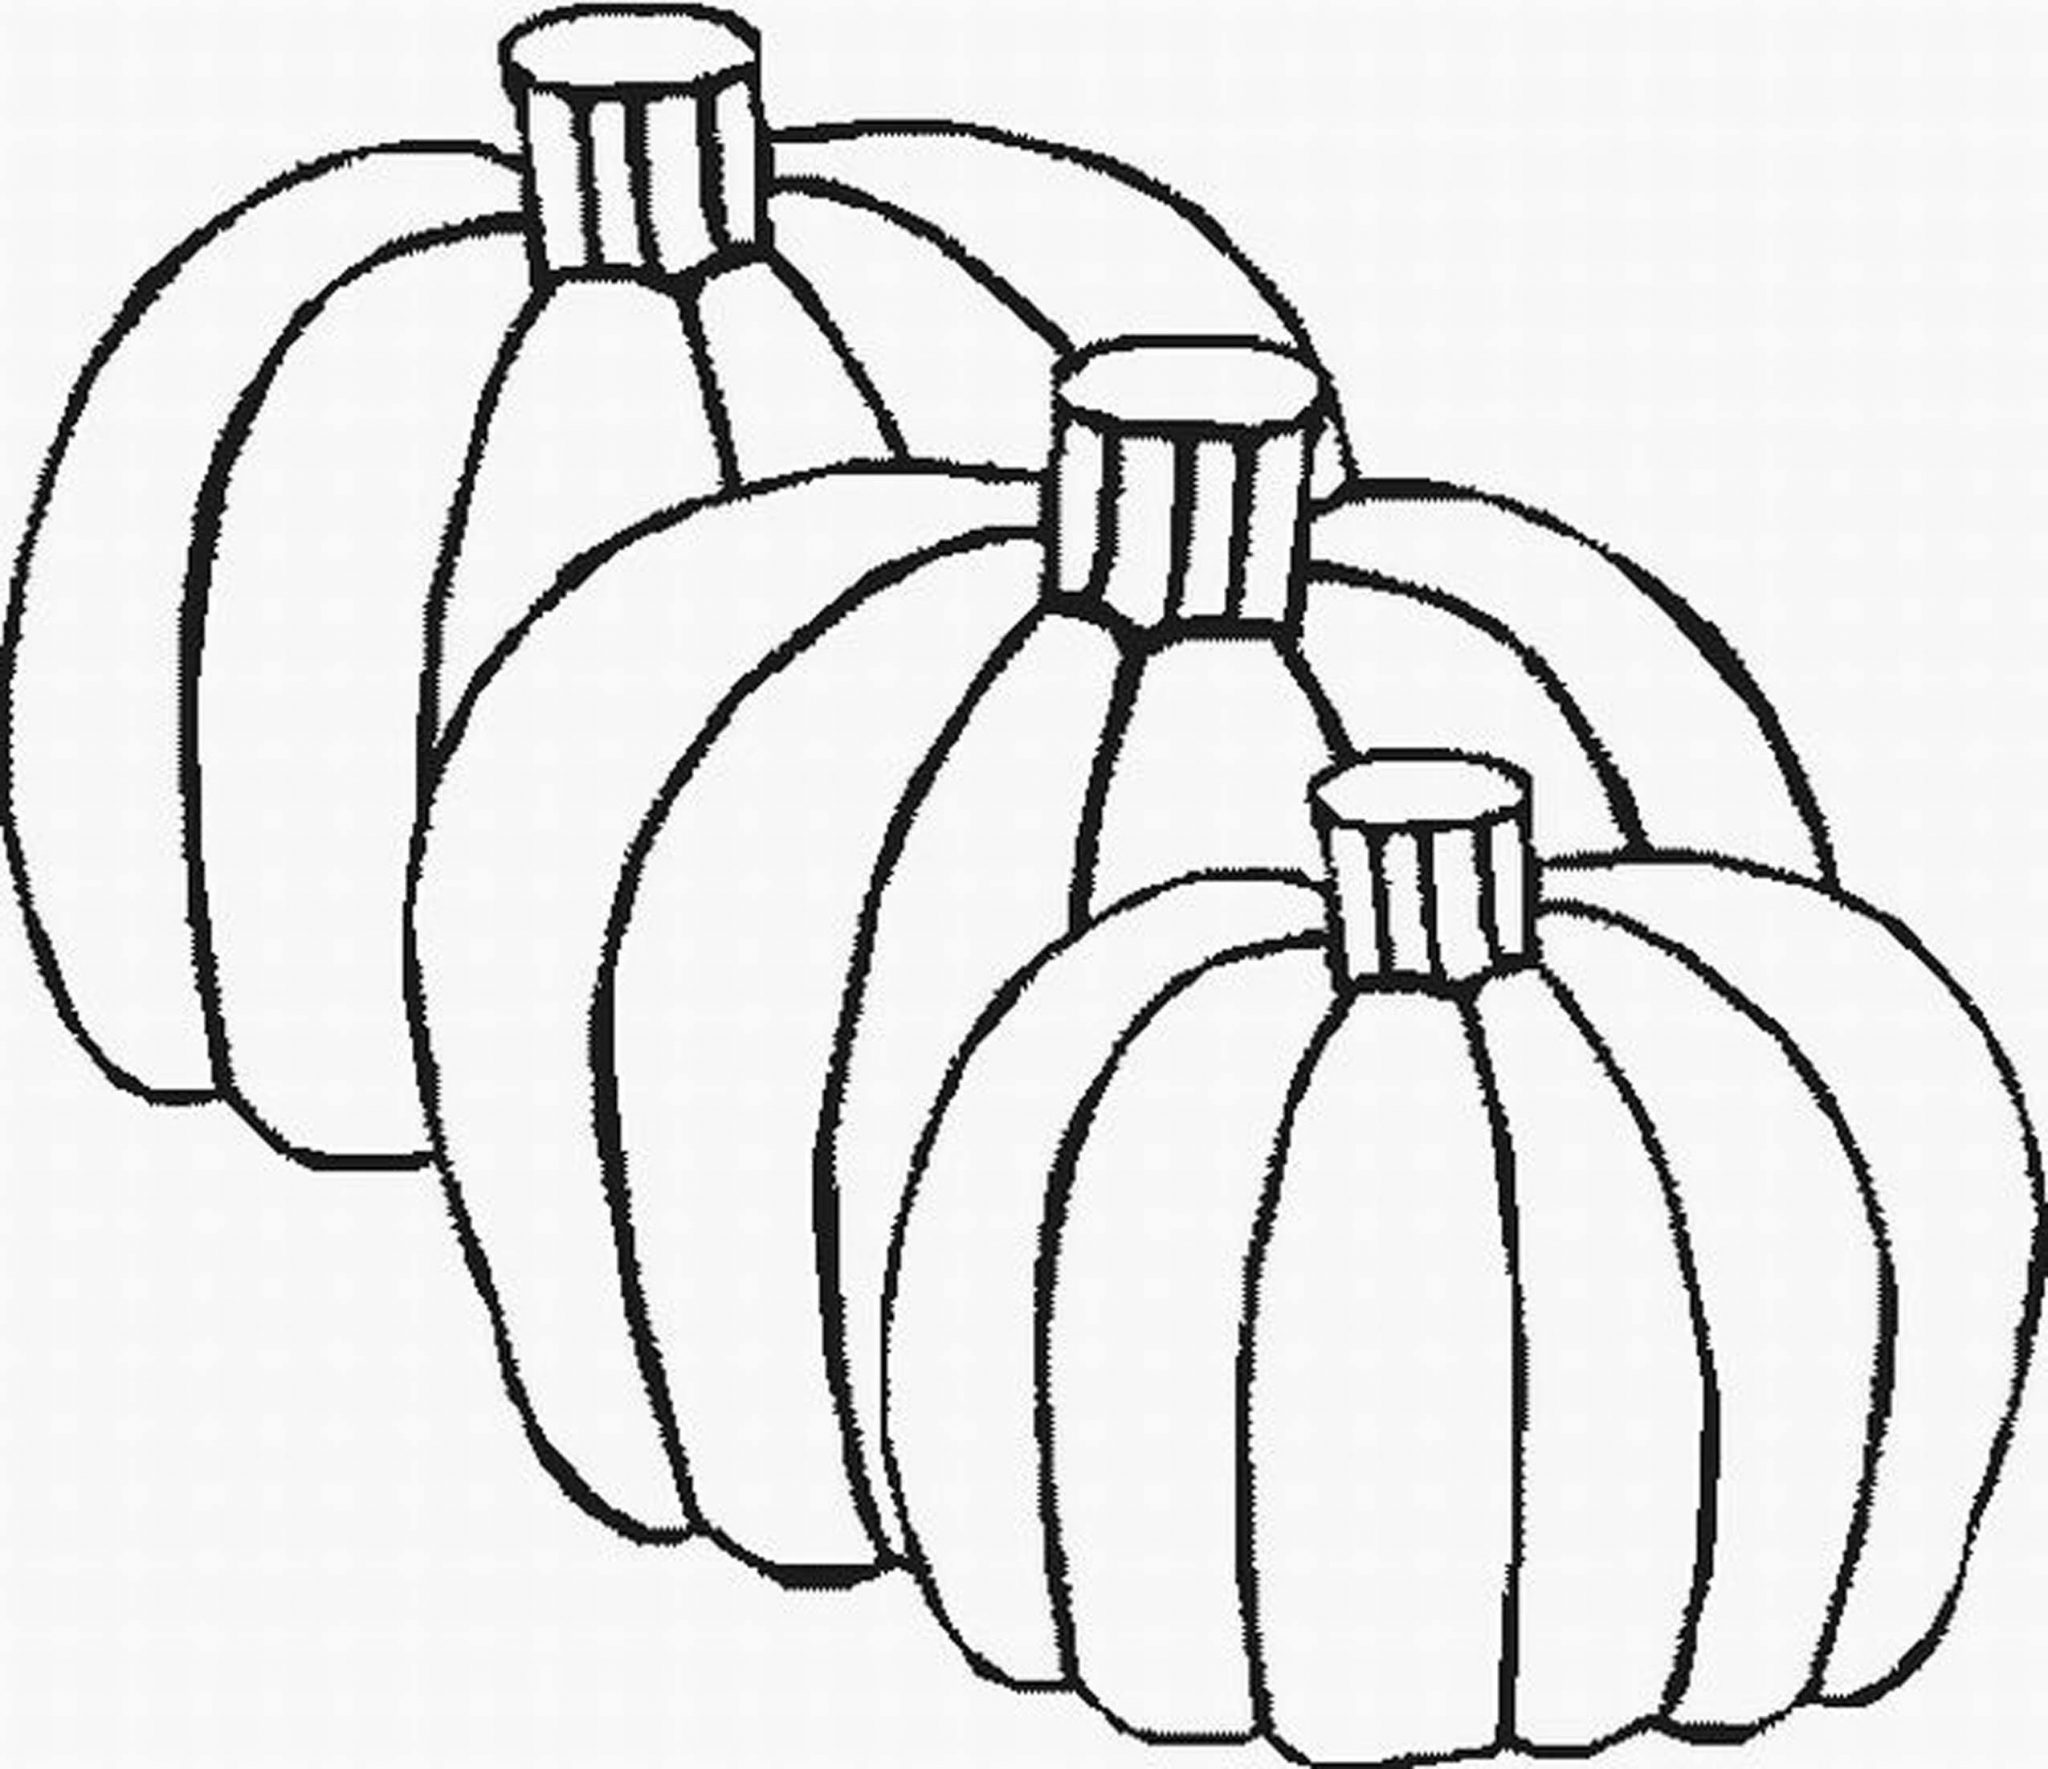 fall pumpkin coloring pages fall coloring pages free pumpkin bestappsforkidscom fall pages coloring pumpkin